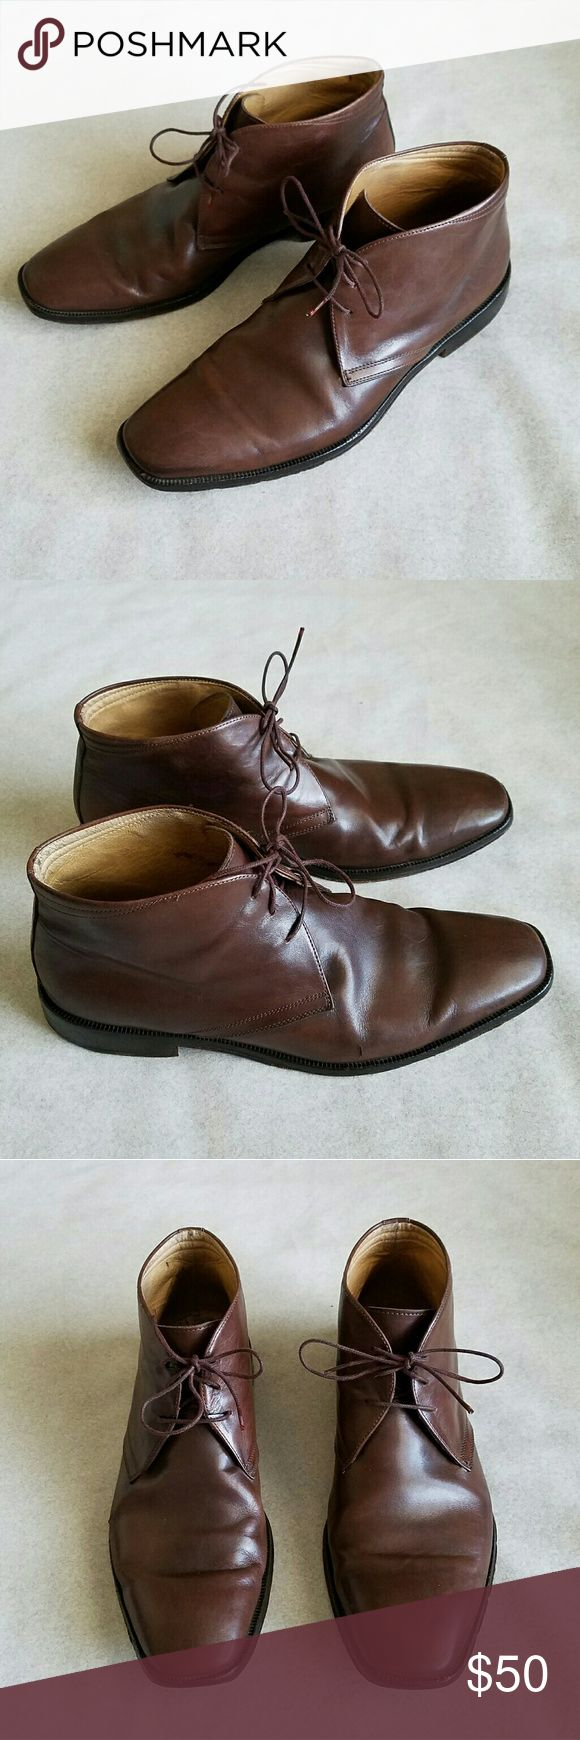 Johnston & Murphy Men's Leather Boots Classic brown leather lace up boots. Men's size 8.5, regular width. Leather is in good condition, right shoe has scratch on outside as shown in 2nd photo. Very good, pre-owned condition. Johnston & Murphy Shoes Boots